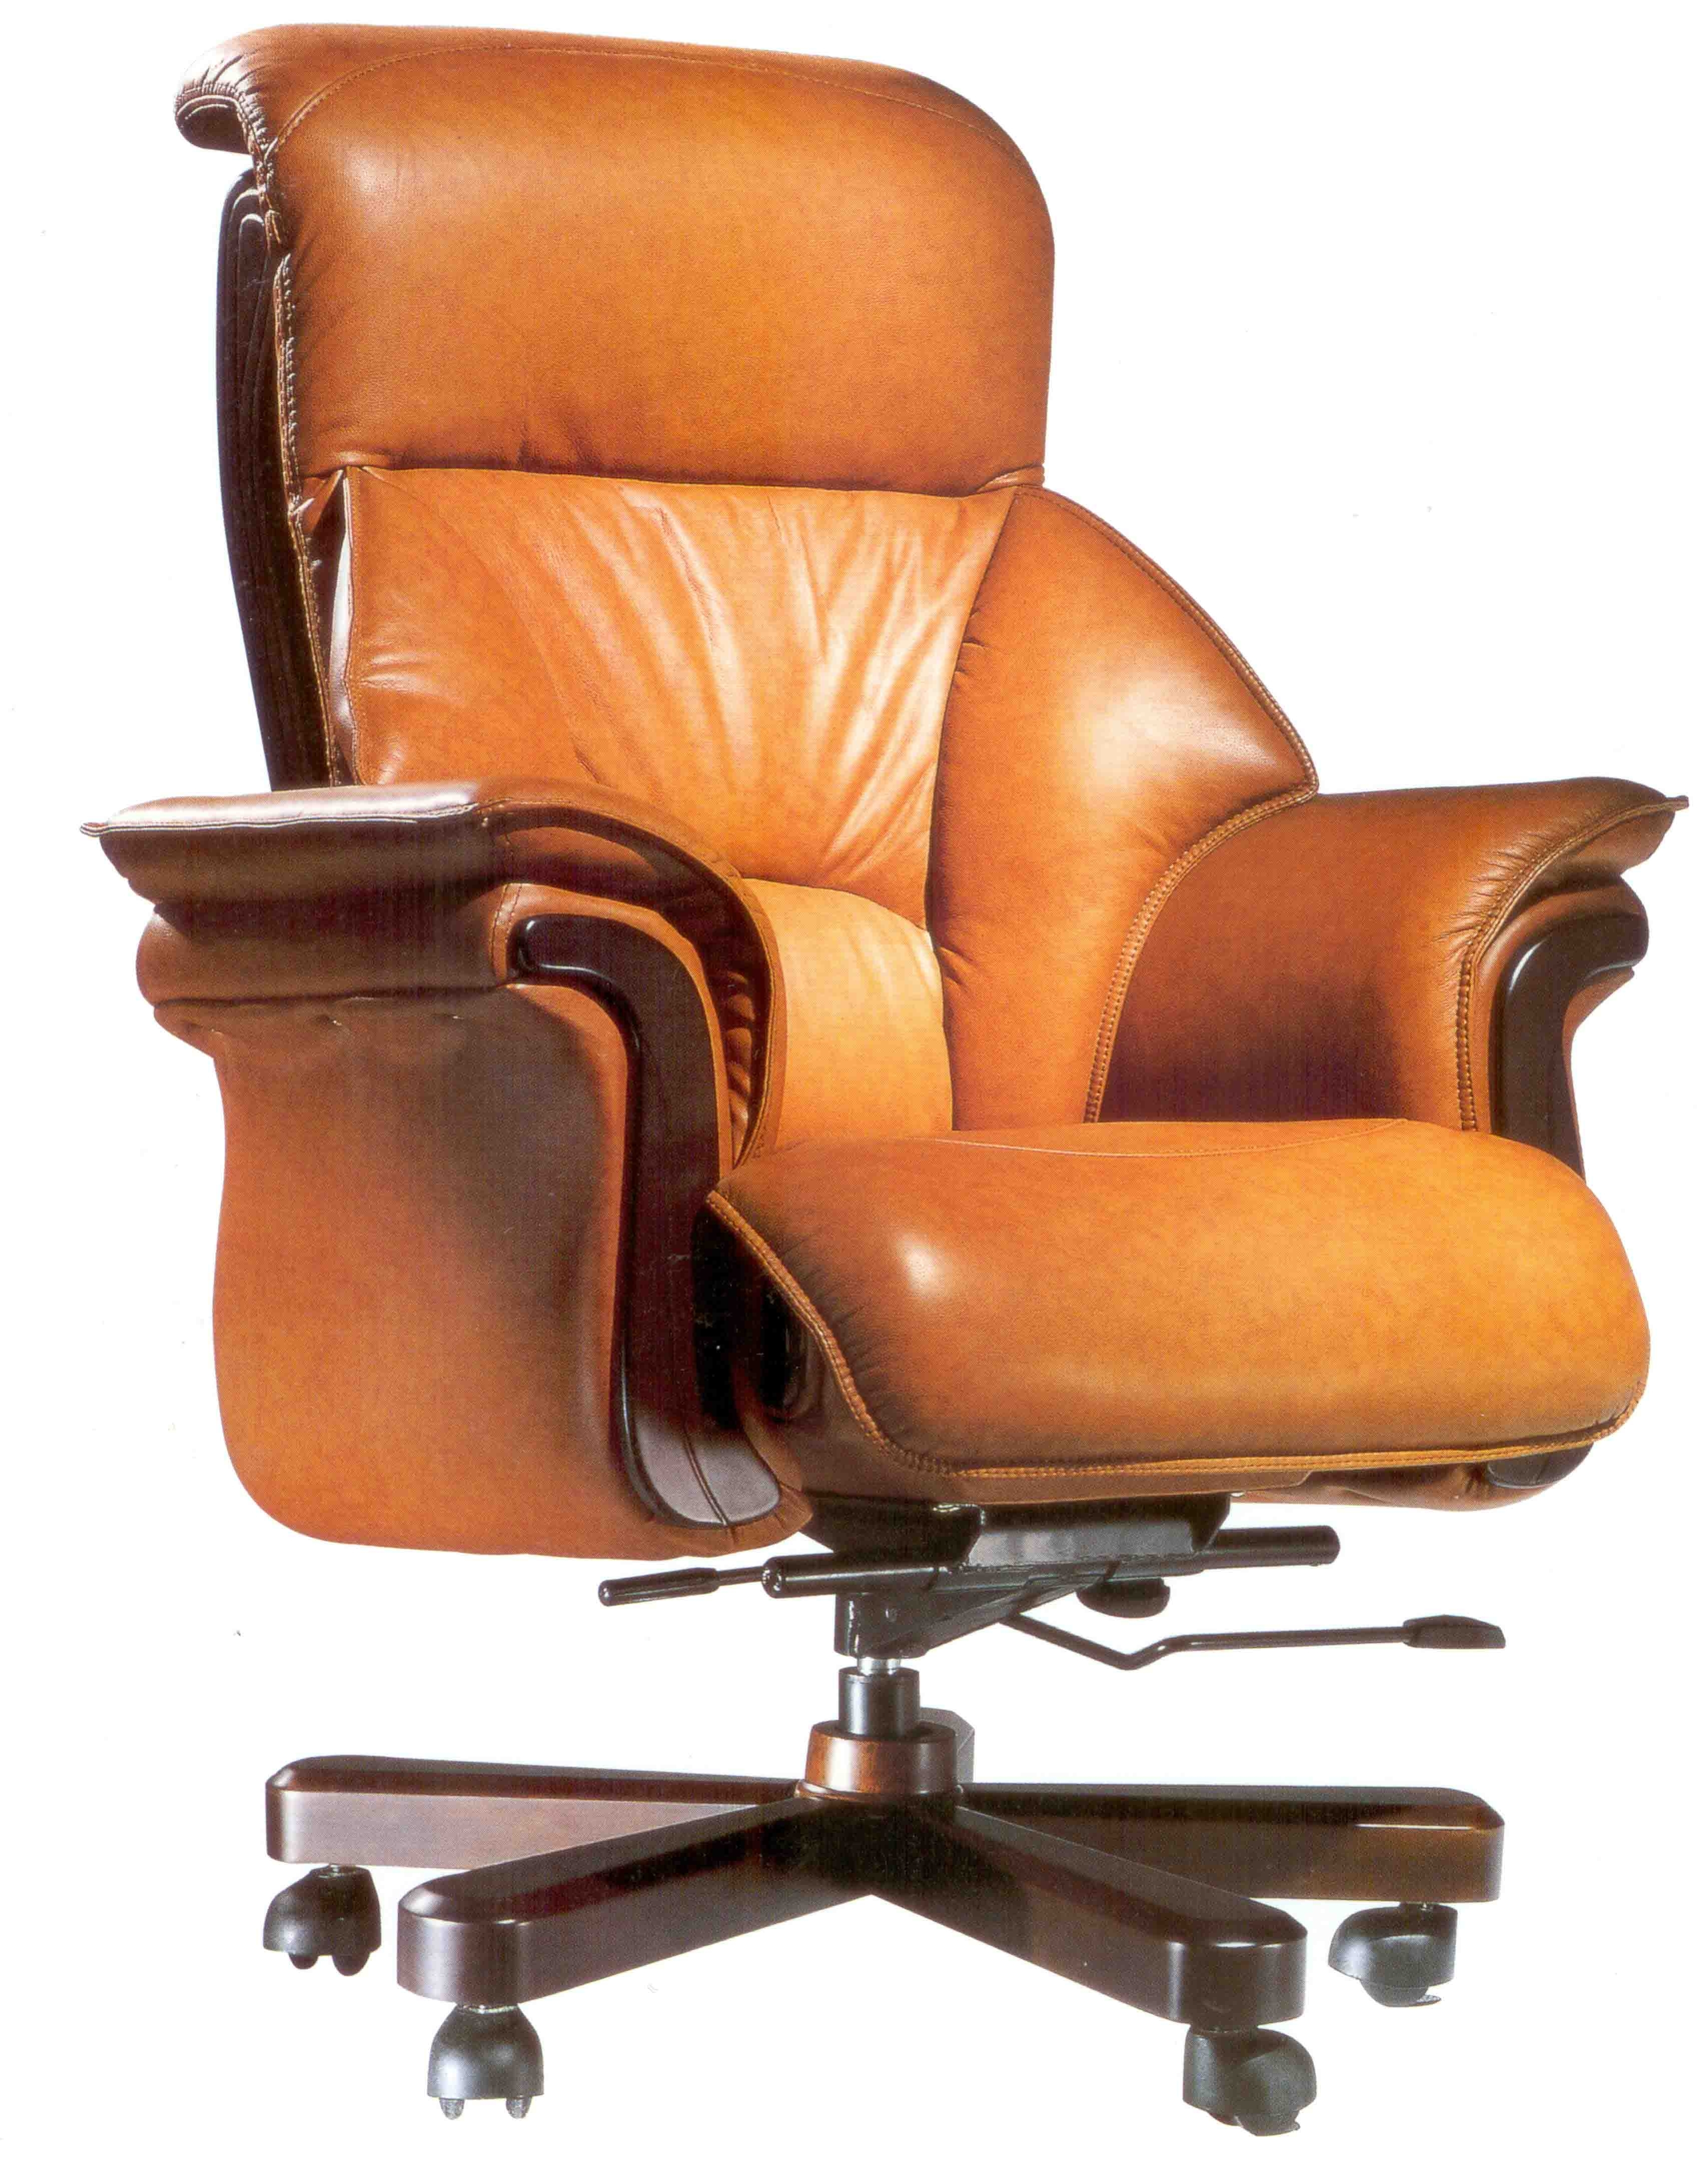 Verona Cream Executive Leather Office Chairs Inside Fashionable Pull Out Twin Bed Chair Tags : Executive Leather Office Chair Mid (View 13 of 20)